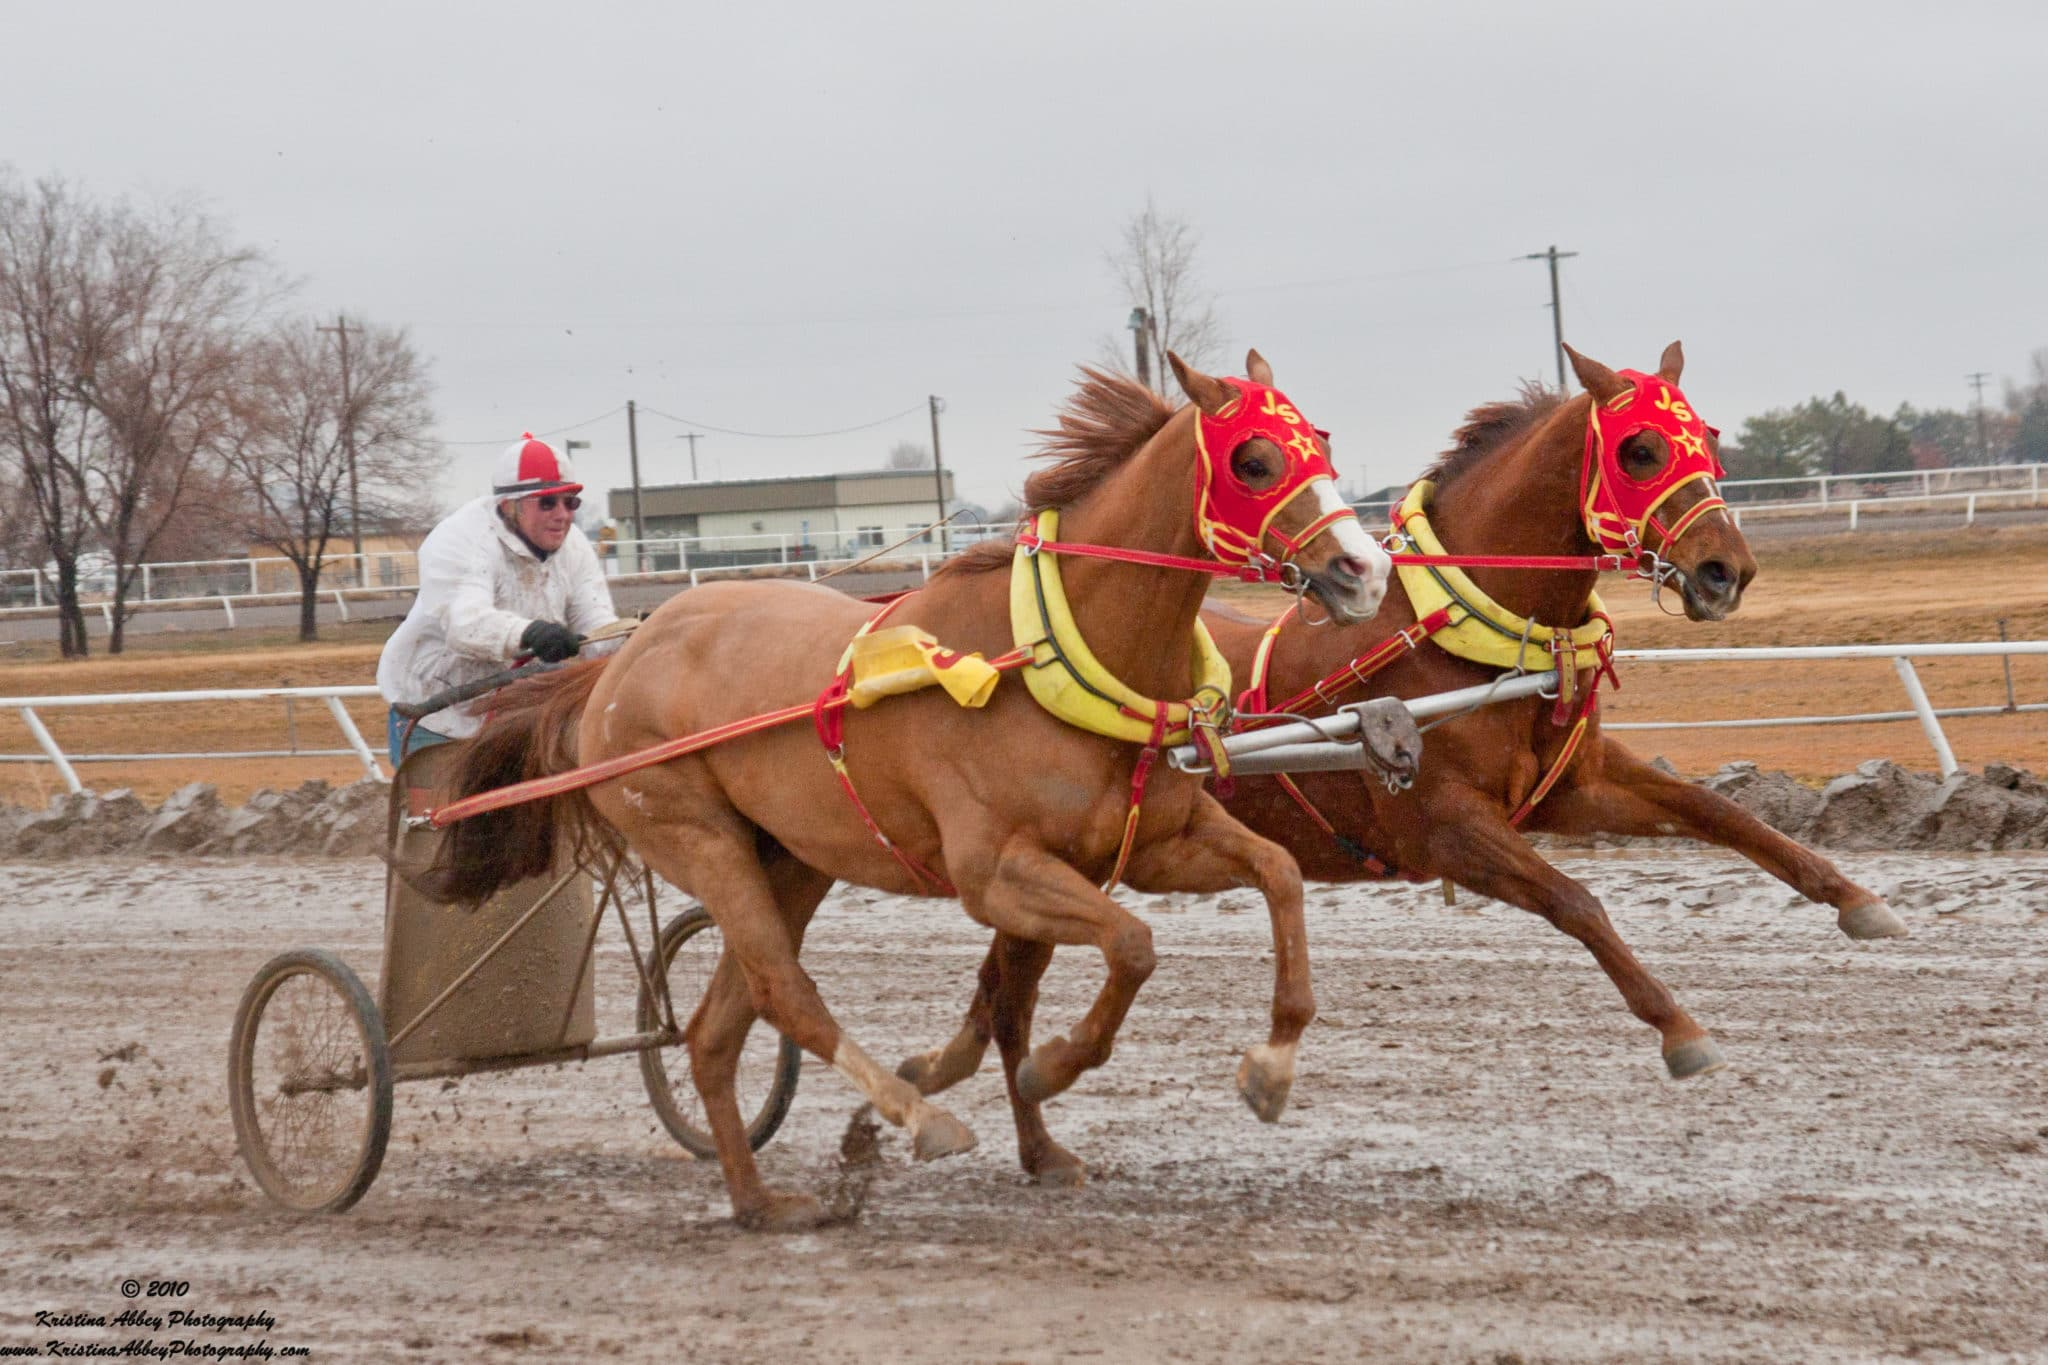 Chariot Racing: The Toughest 22 Seconds in Snow & Mud